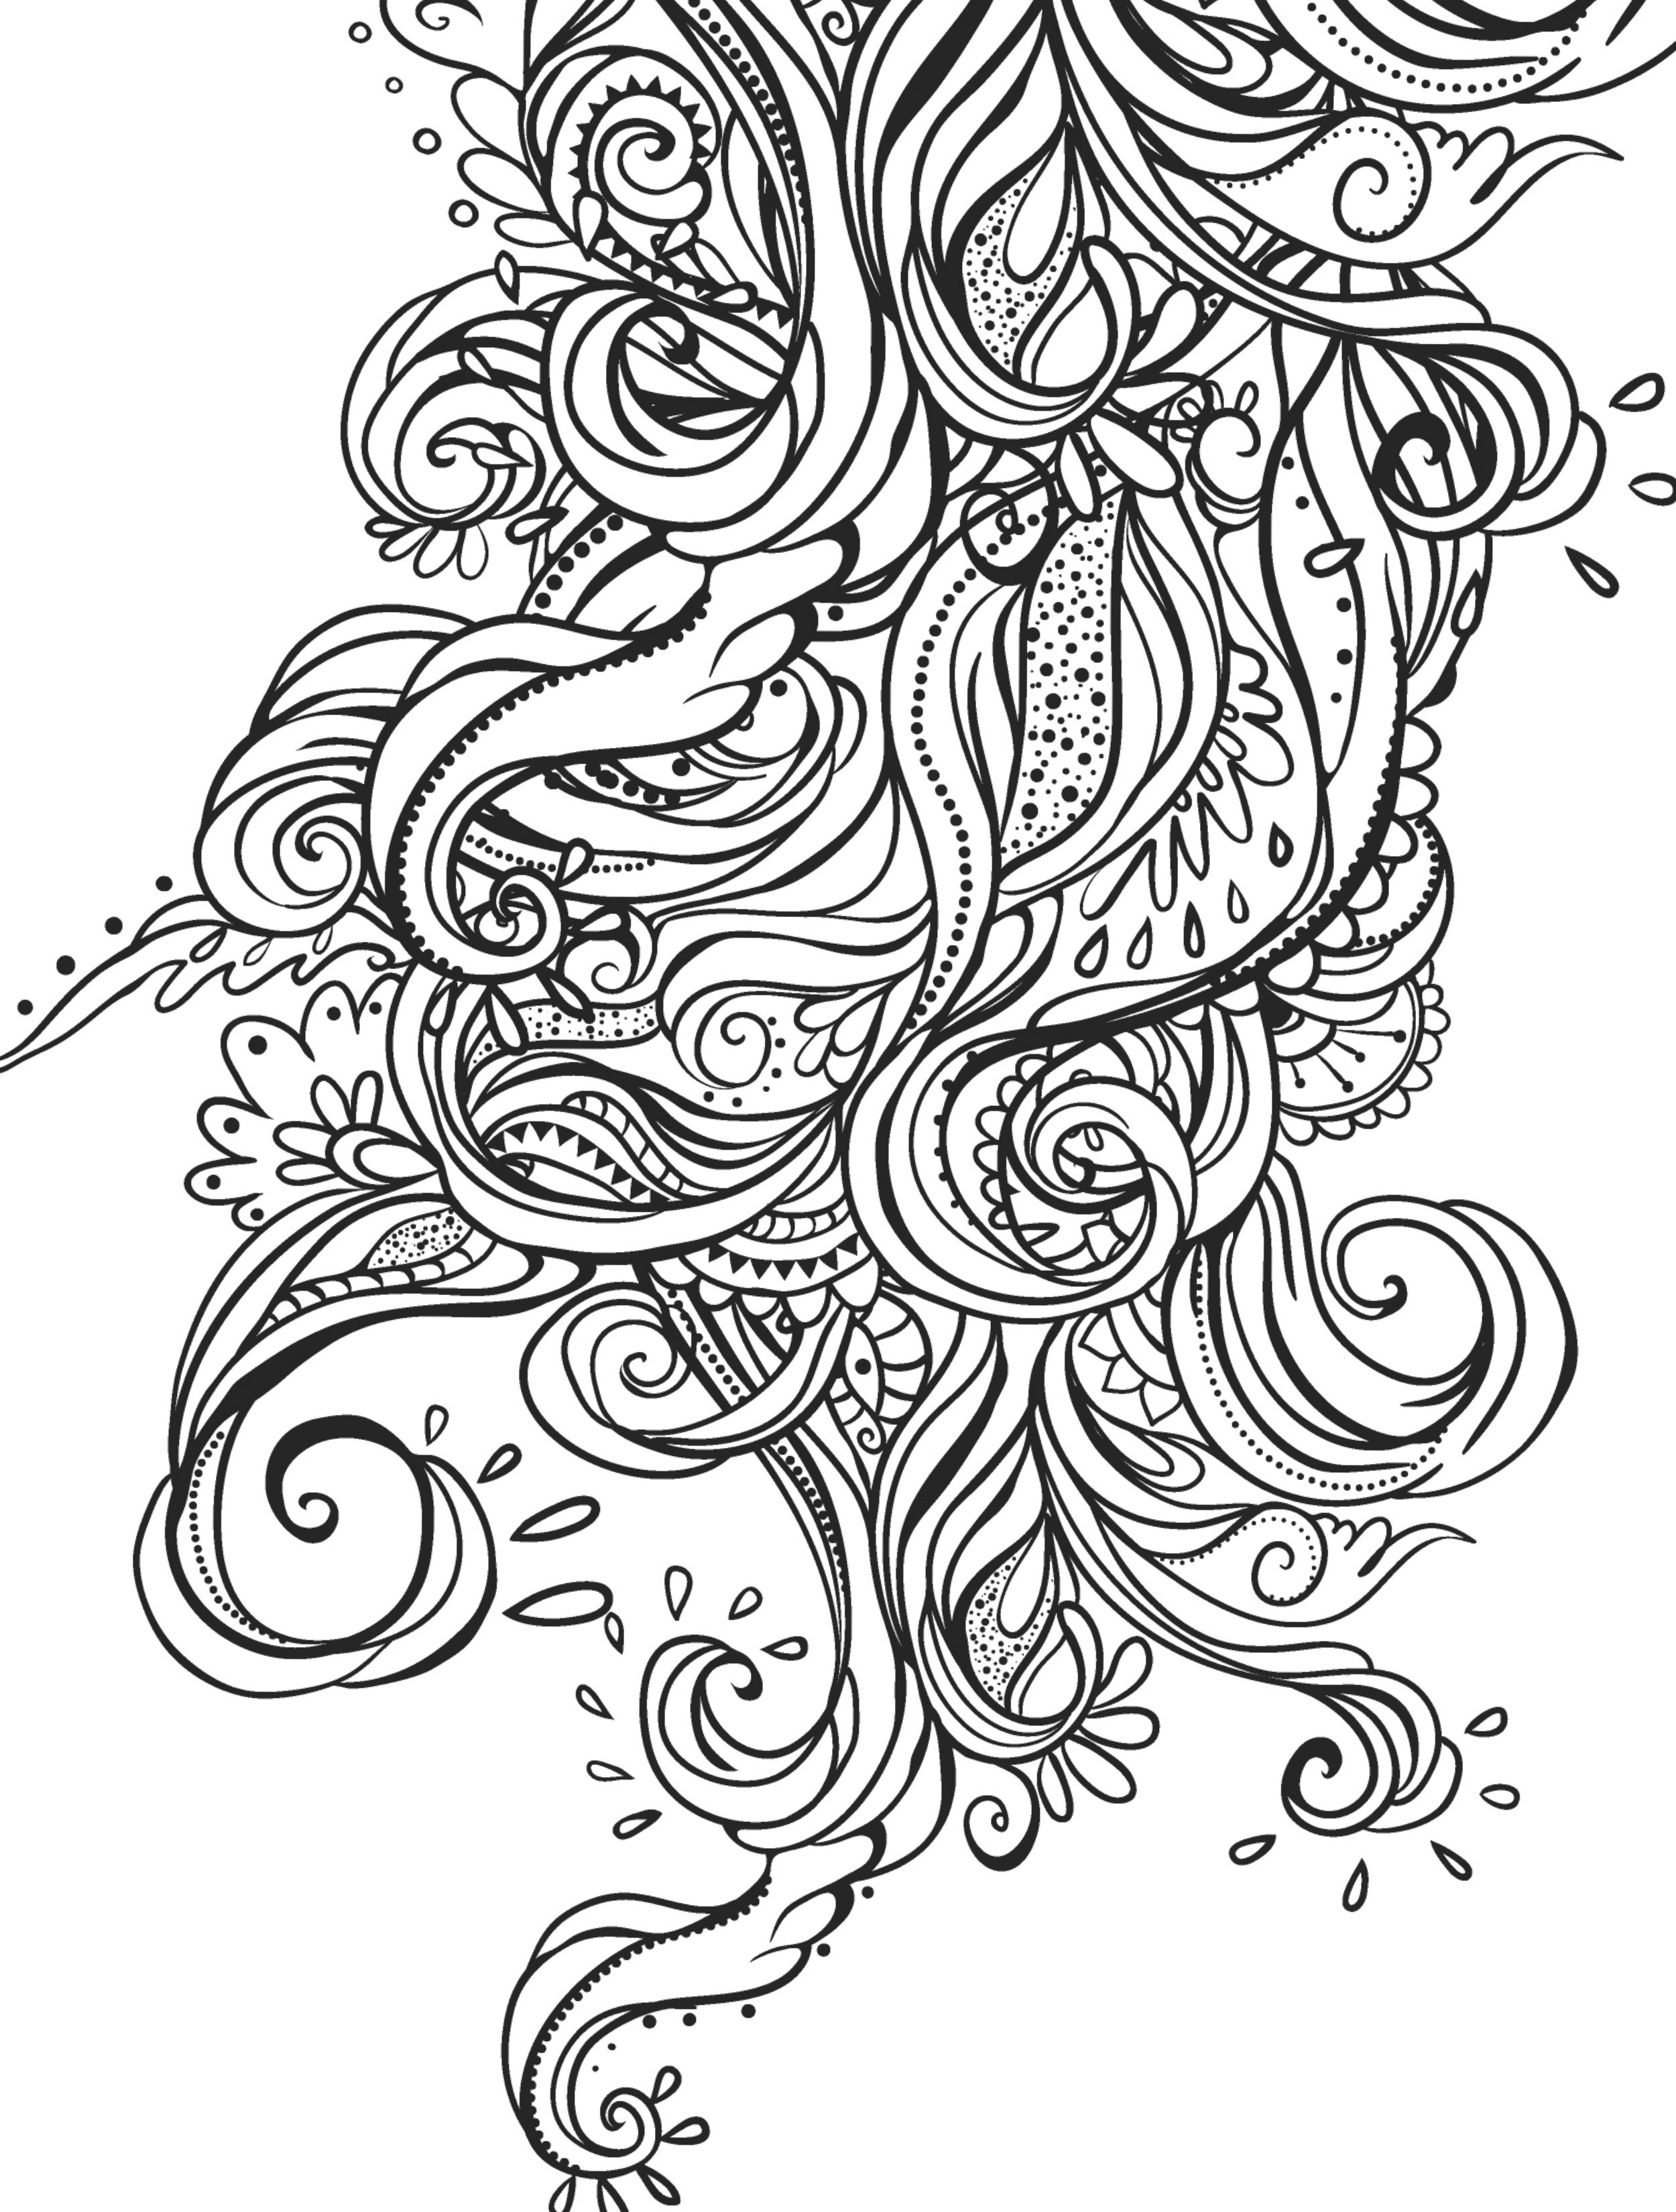 coloring pages for girls designs 20 attractive coloring pages for adults we need fun for pages coloring designs girls